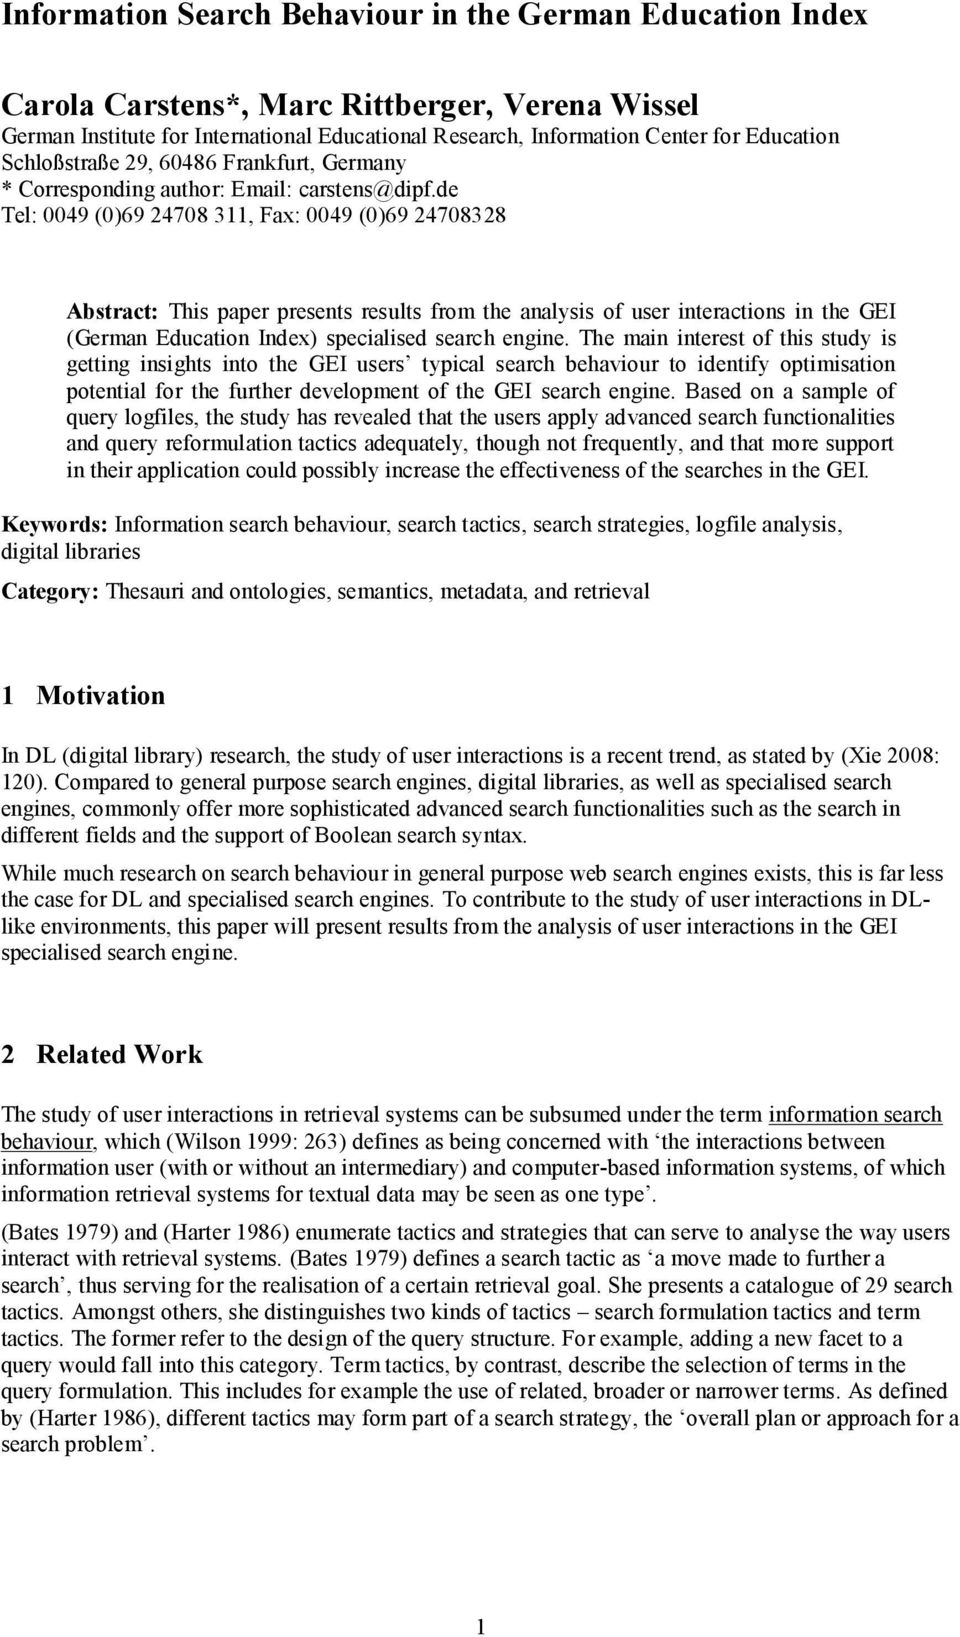 de Tel: 0049 (0)69 24708 311, Fax: 0049 (0)69 24708328 Abstract: This paper presents results from the analysis of user interactions in the GEI (German Education Index) specialised search engine.